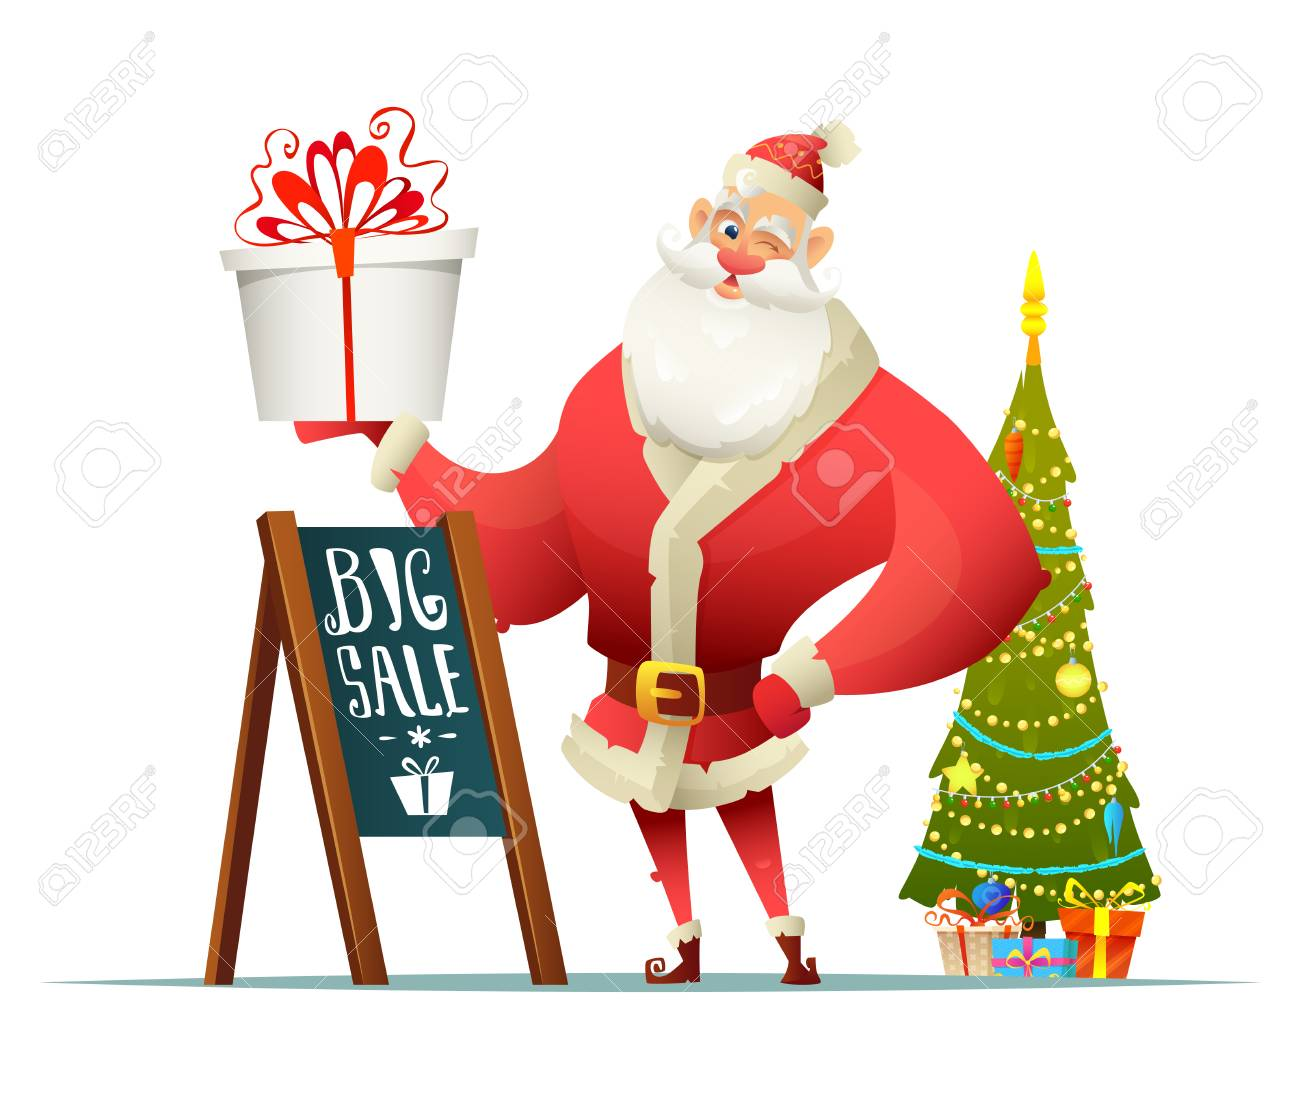 Christmas Tree Stand For Sale Santa Holding A Present In His Hand Nearby Stand Big Sale Sign